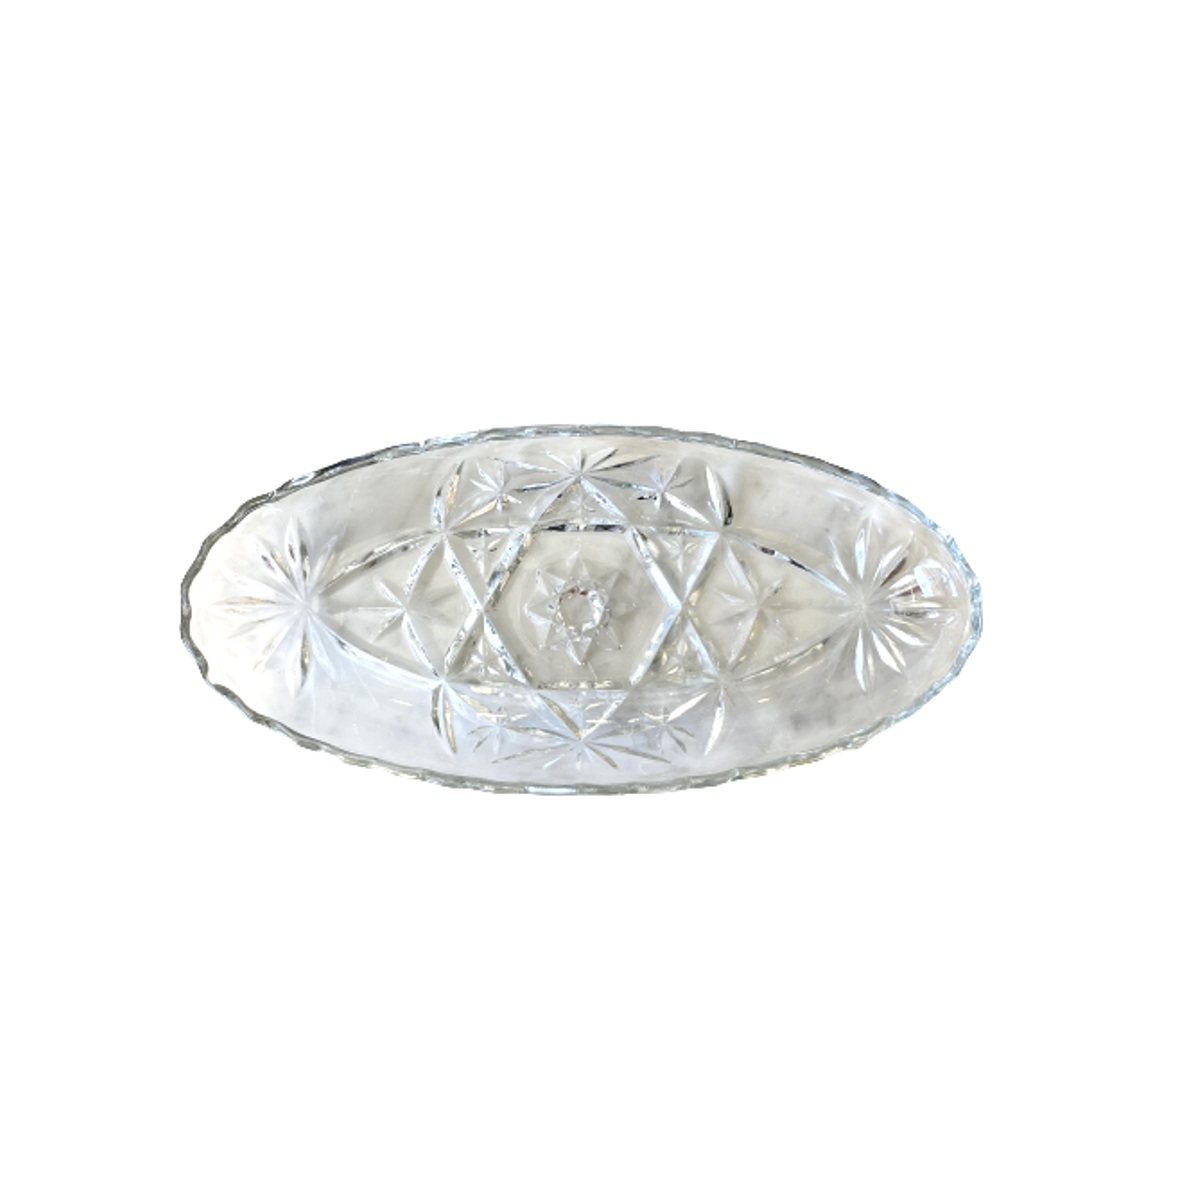 Vintage Oval Glass Dish